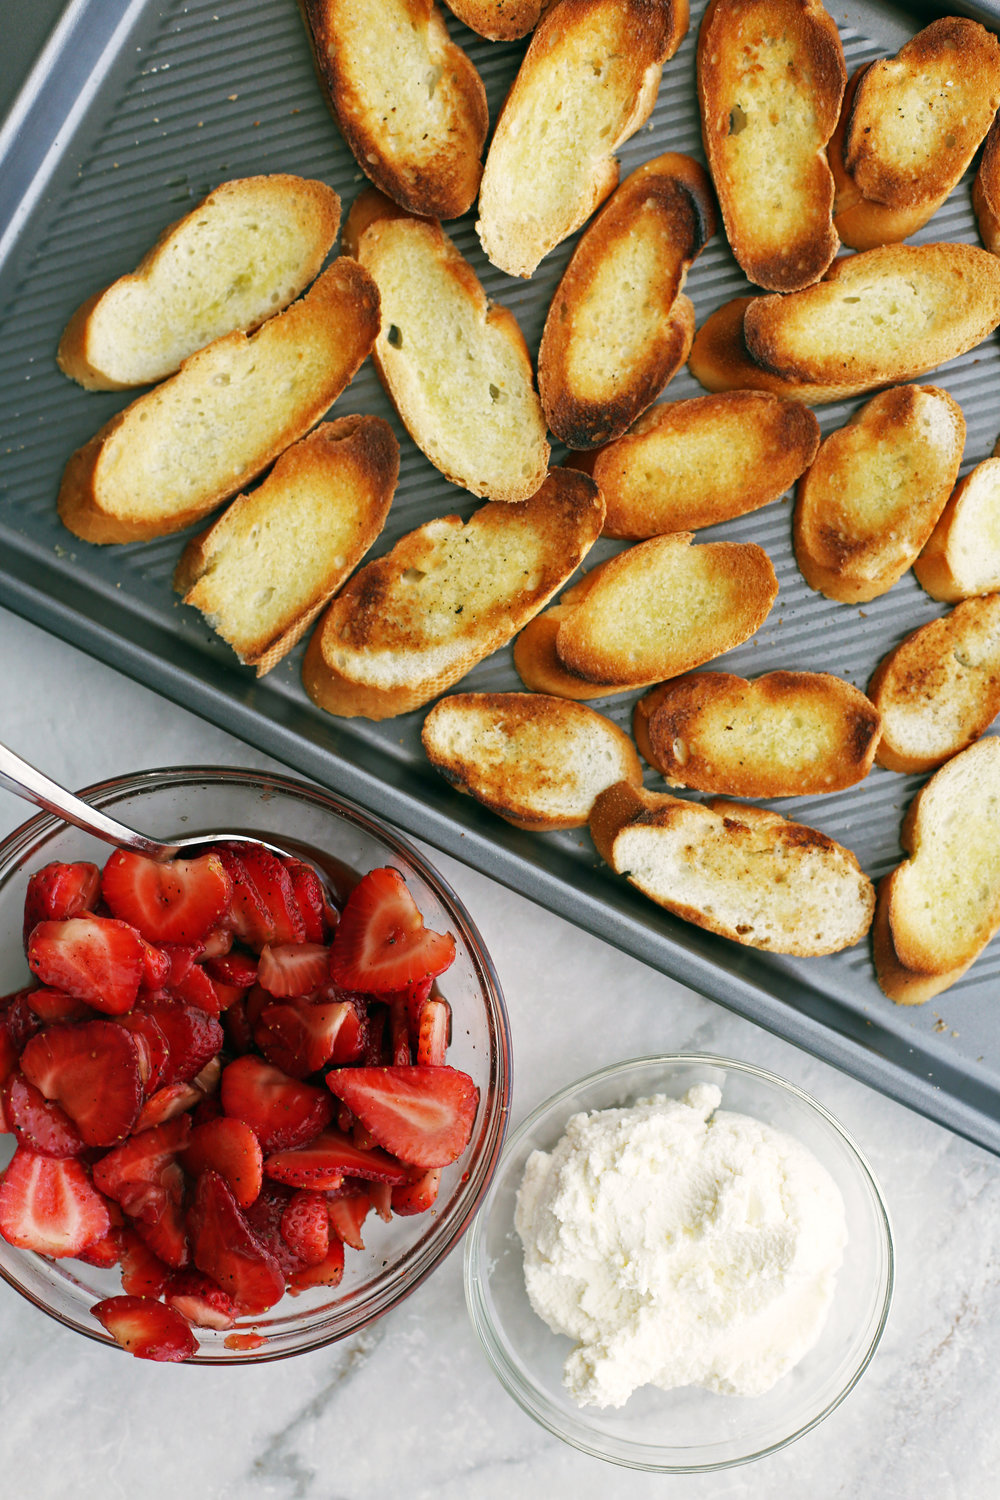 Toasted baguette slices on a baking sheet, a bowl of balsamic strawberries, and a bowl of ricotta.